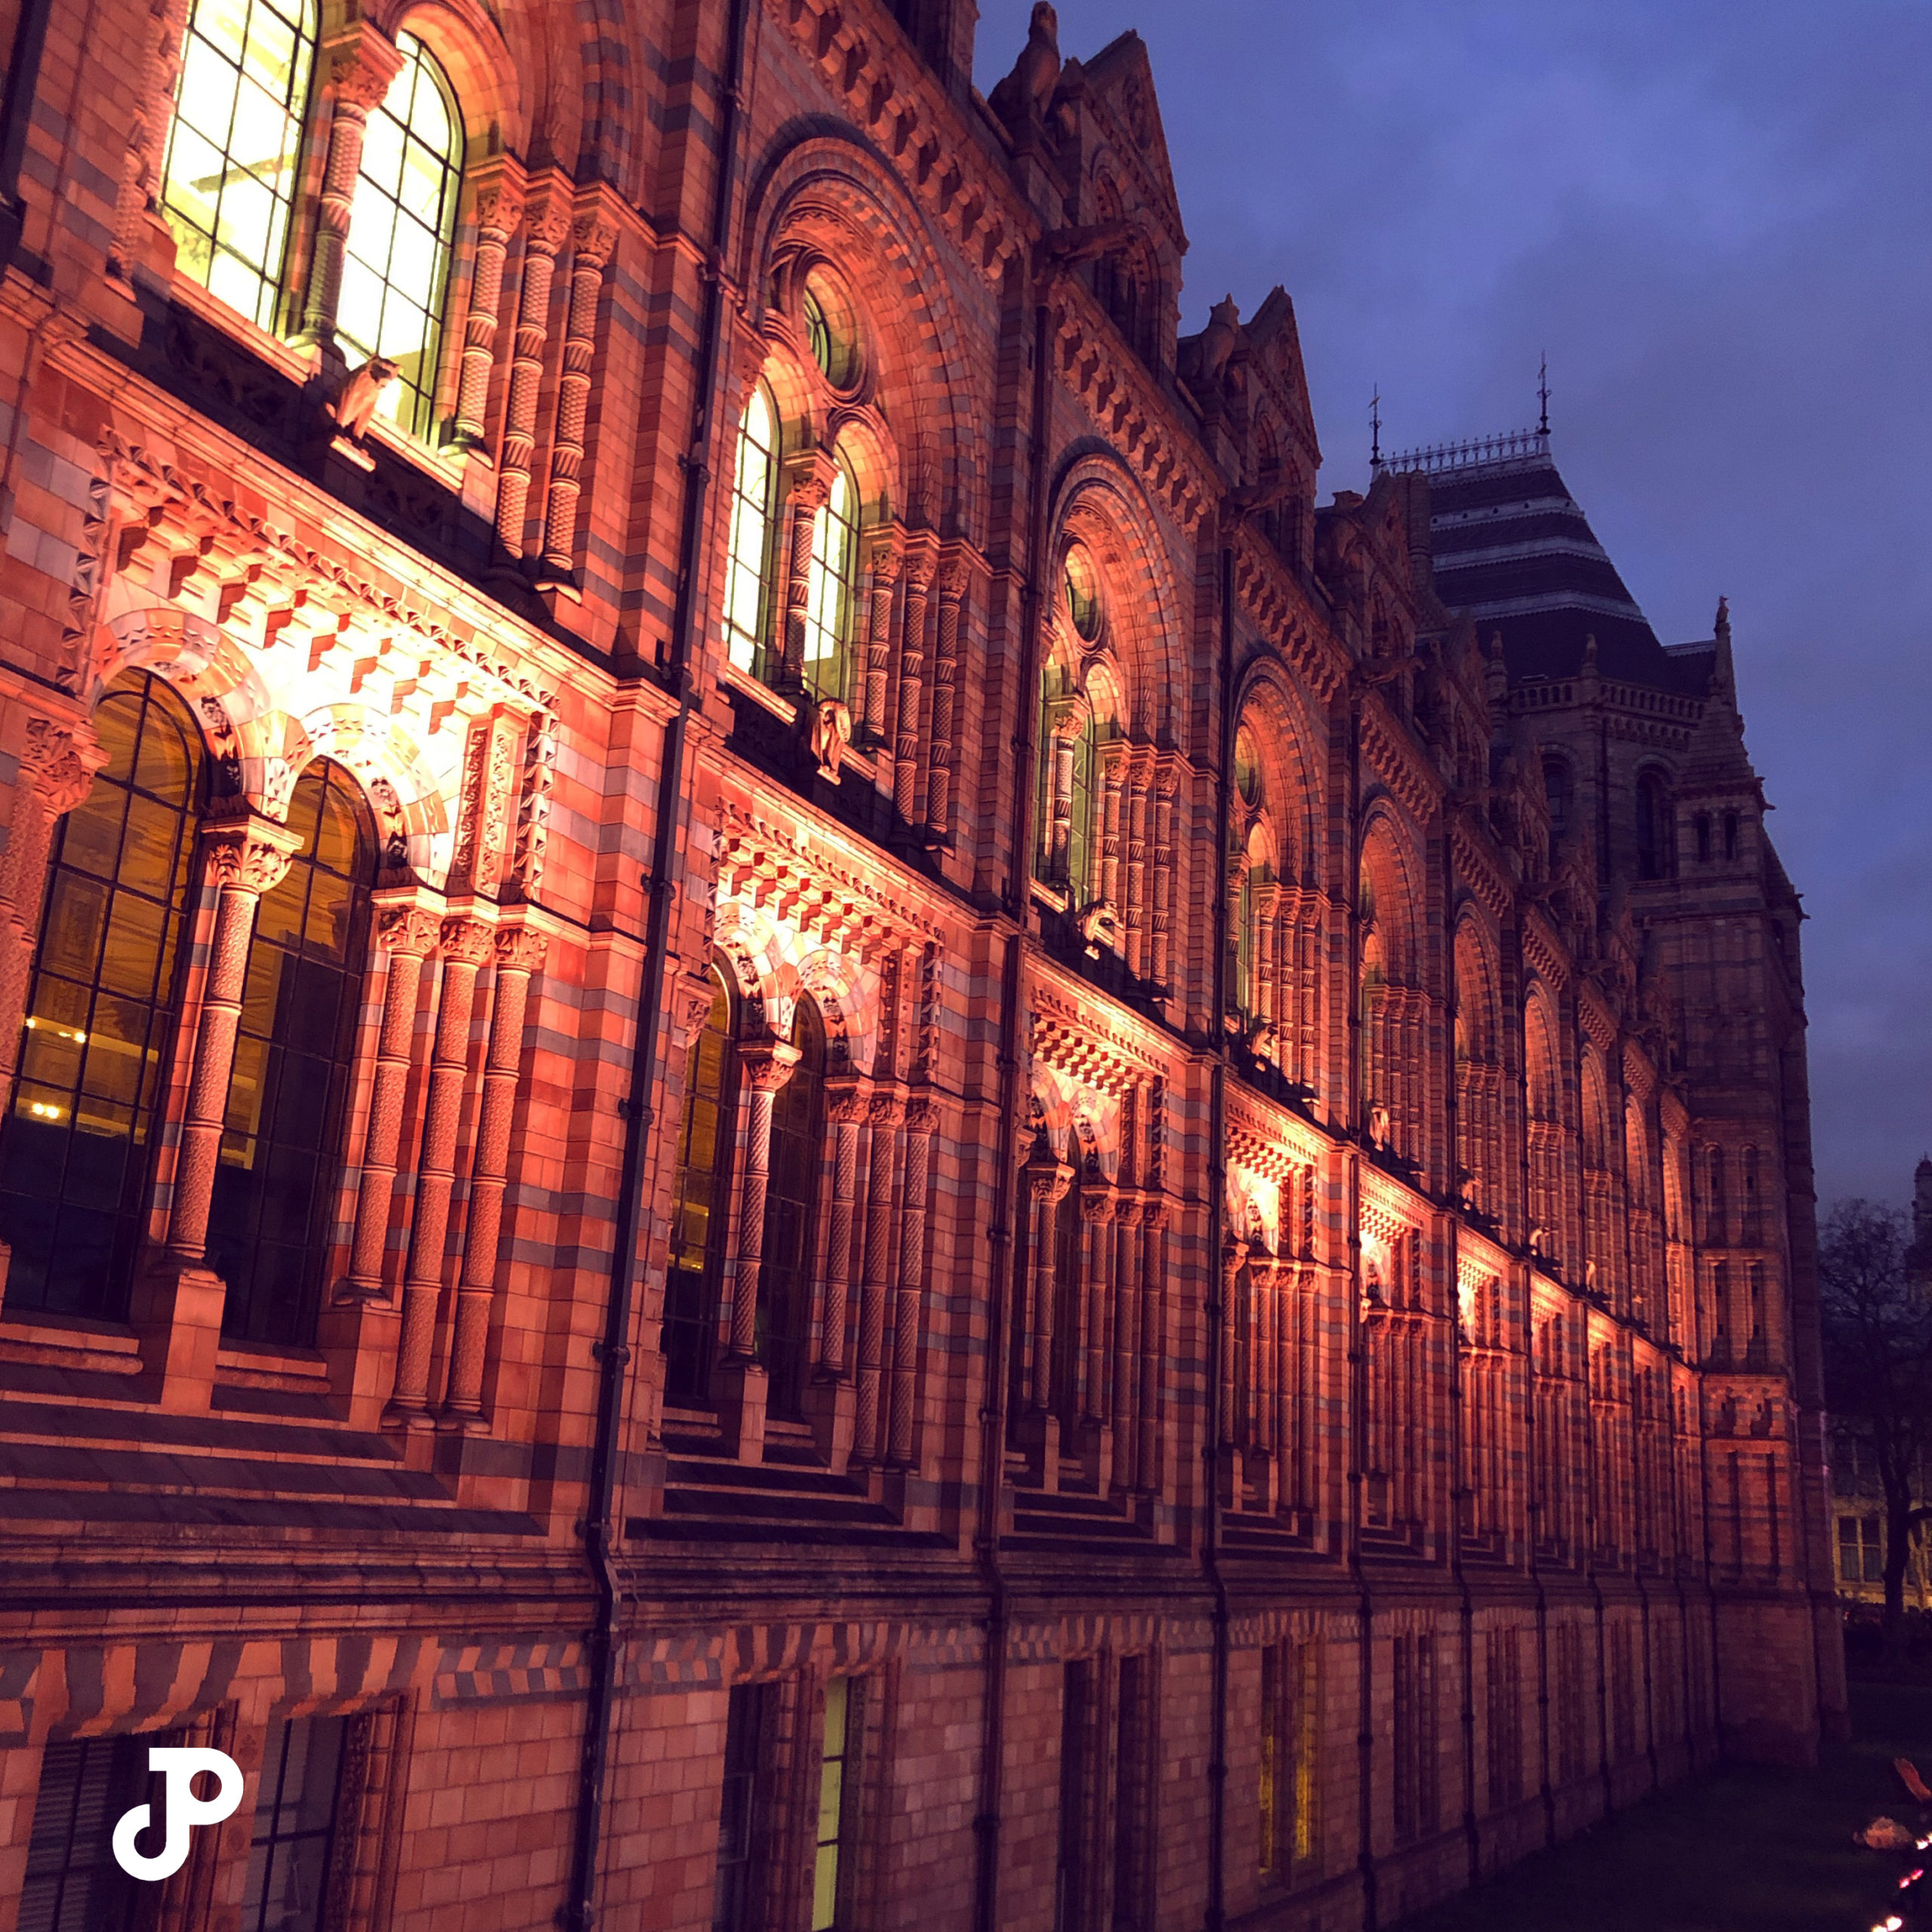 the ornate facade of the London Natural History Museum illuminated at night